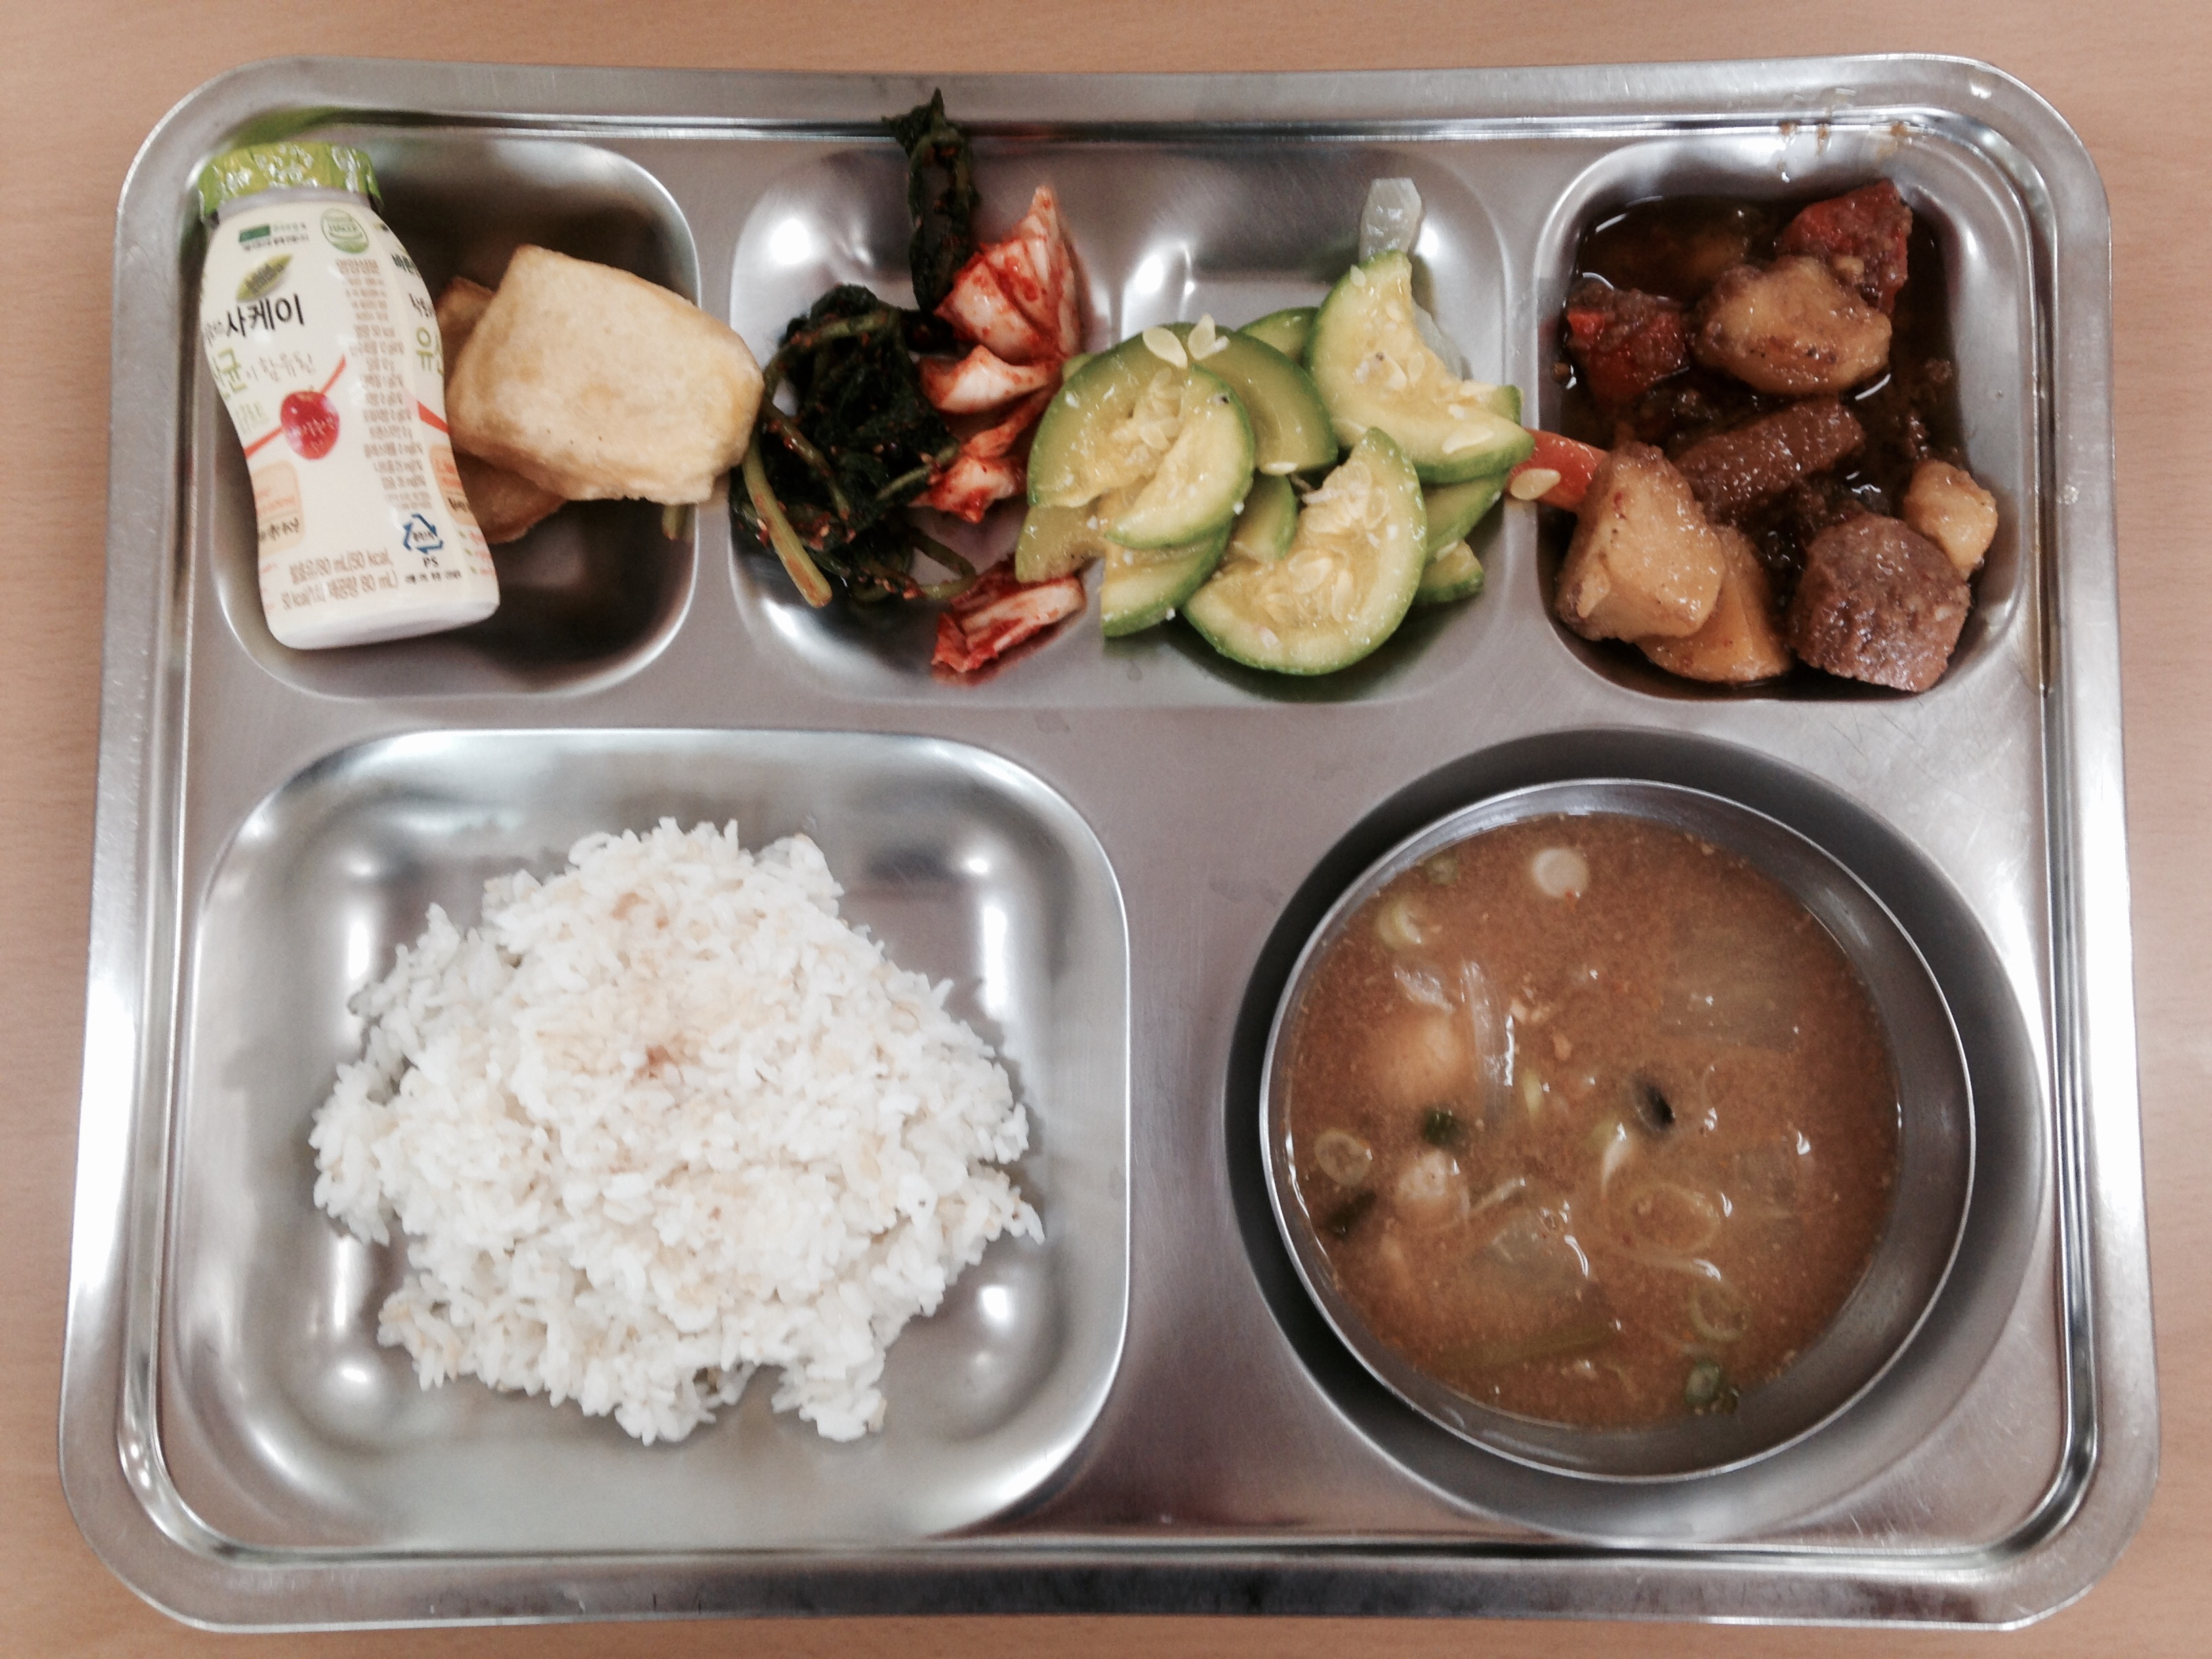 school lunches in south korea the huffington post 2016 03 13 1457846456 5400089 fullsizerender25 jpg